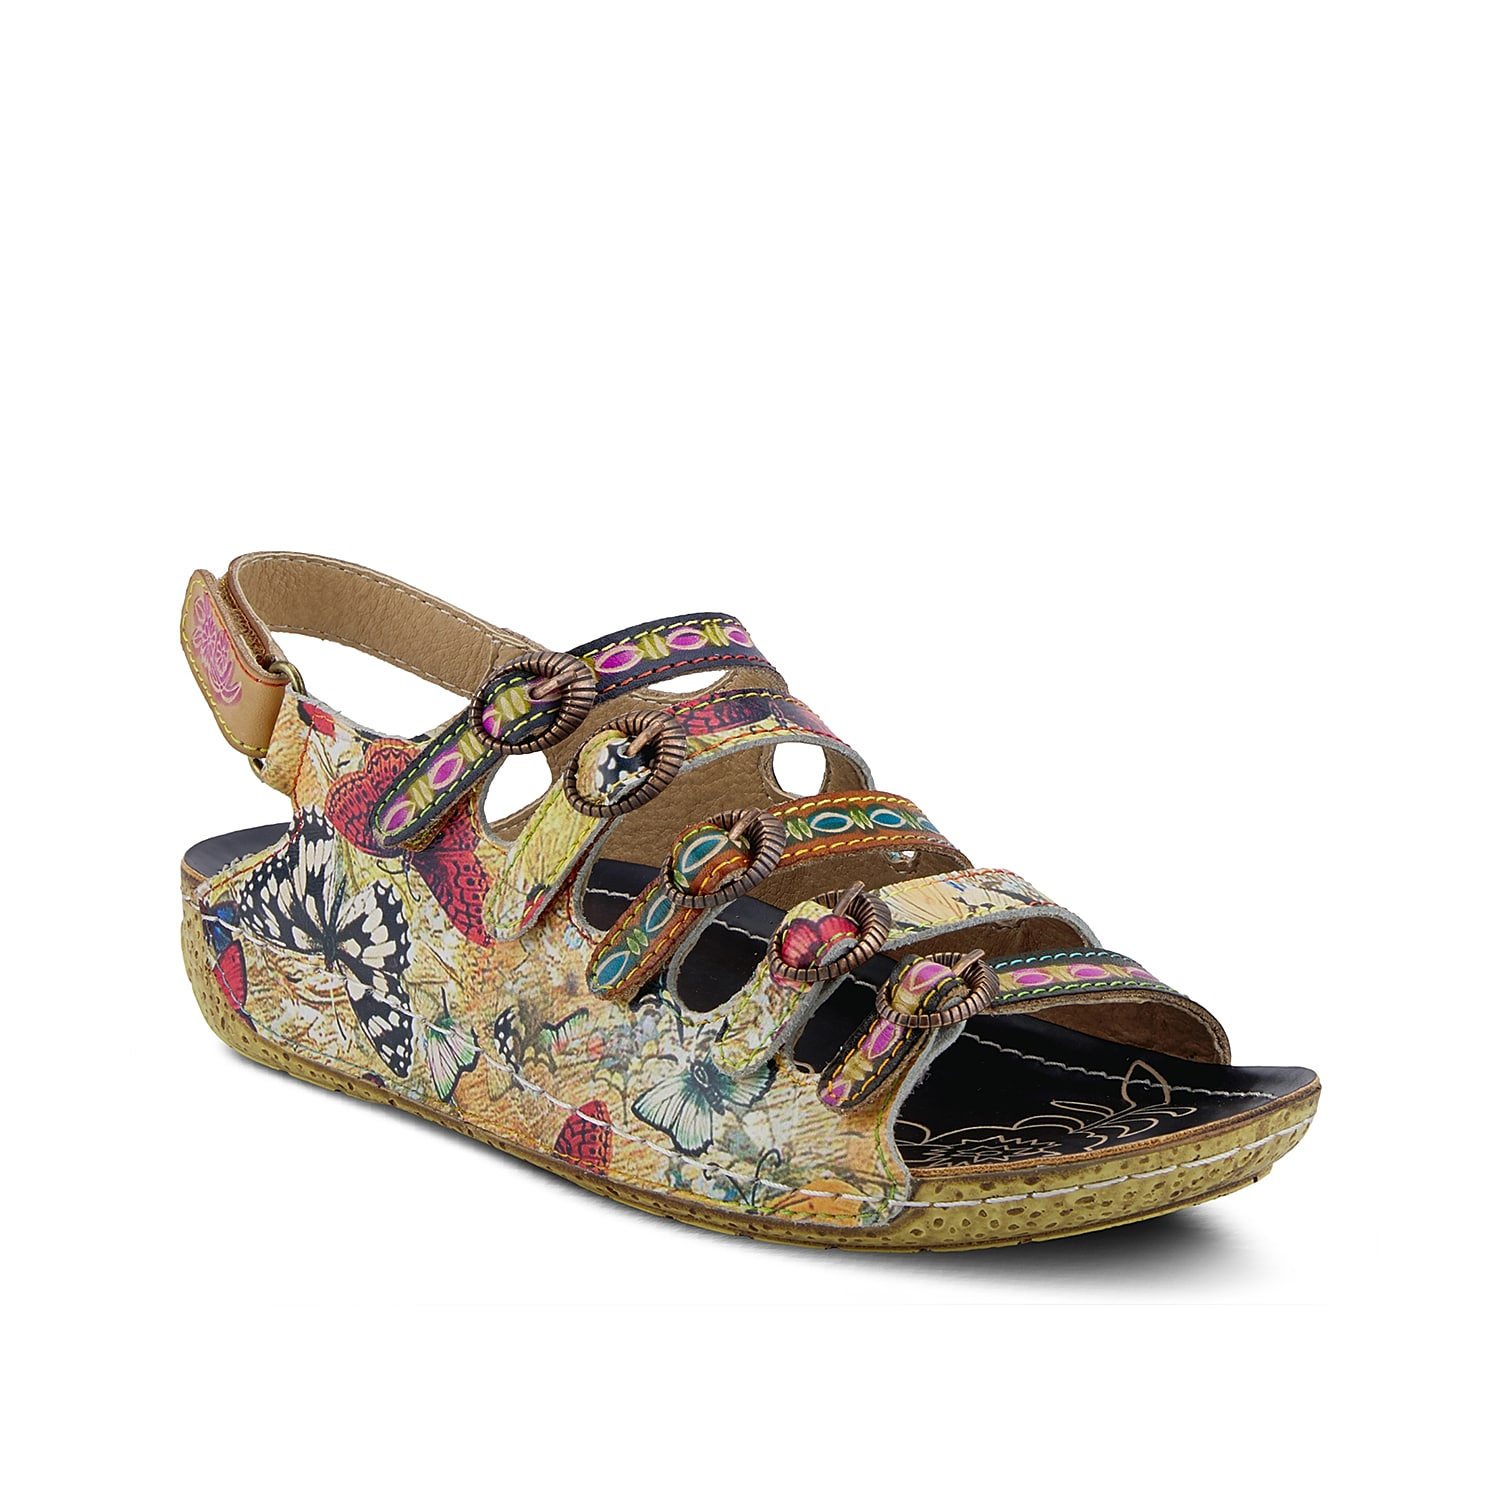 Bring unique style to your wardrobe with the Taffyta wedge sandal from L\\\'Artiste by Spring Step. This silhouette features multiple straps across the vamp and hand-painted leather for extra allure!